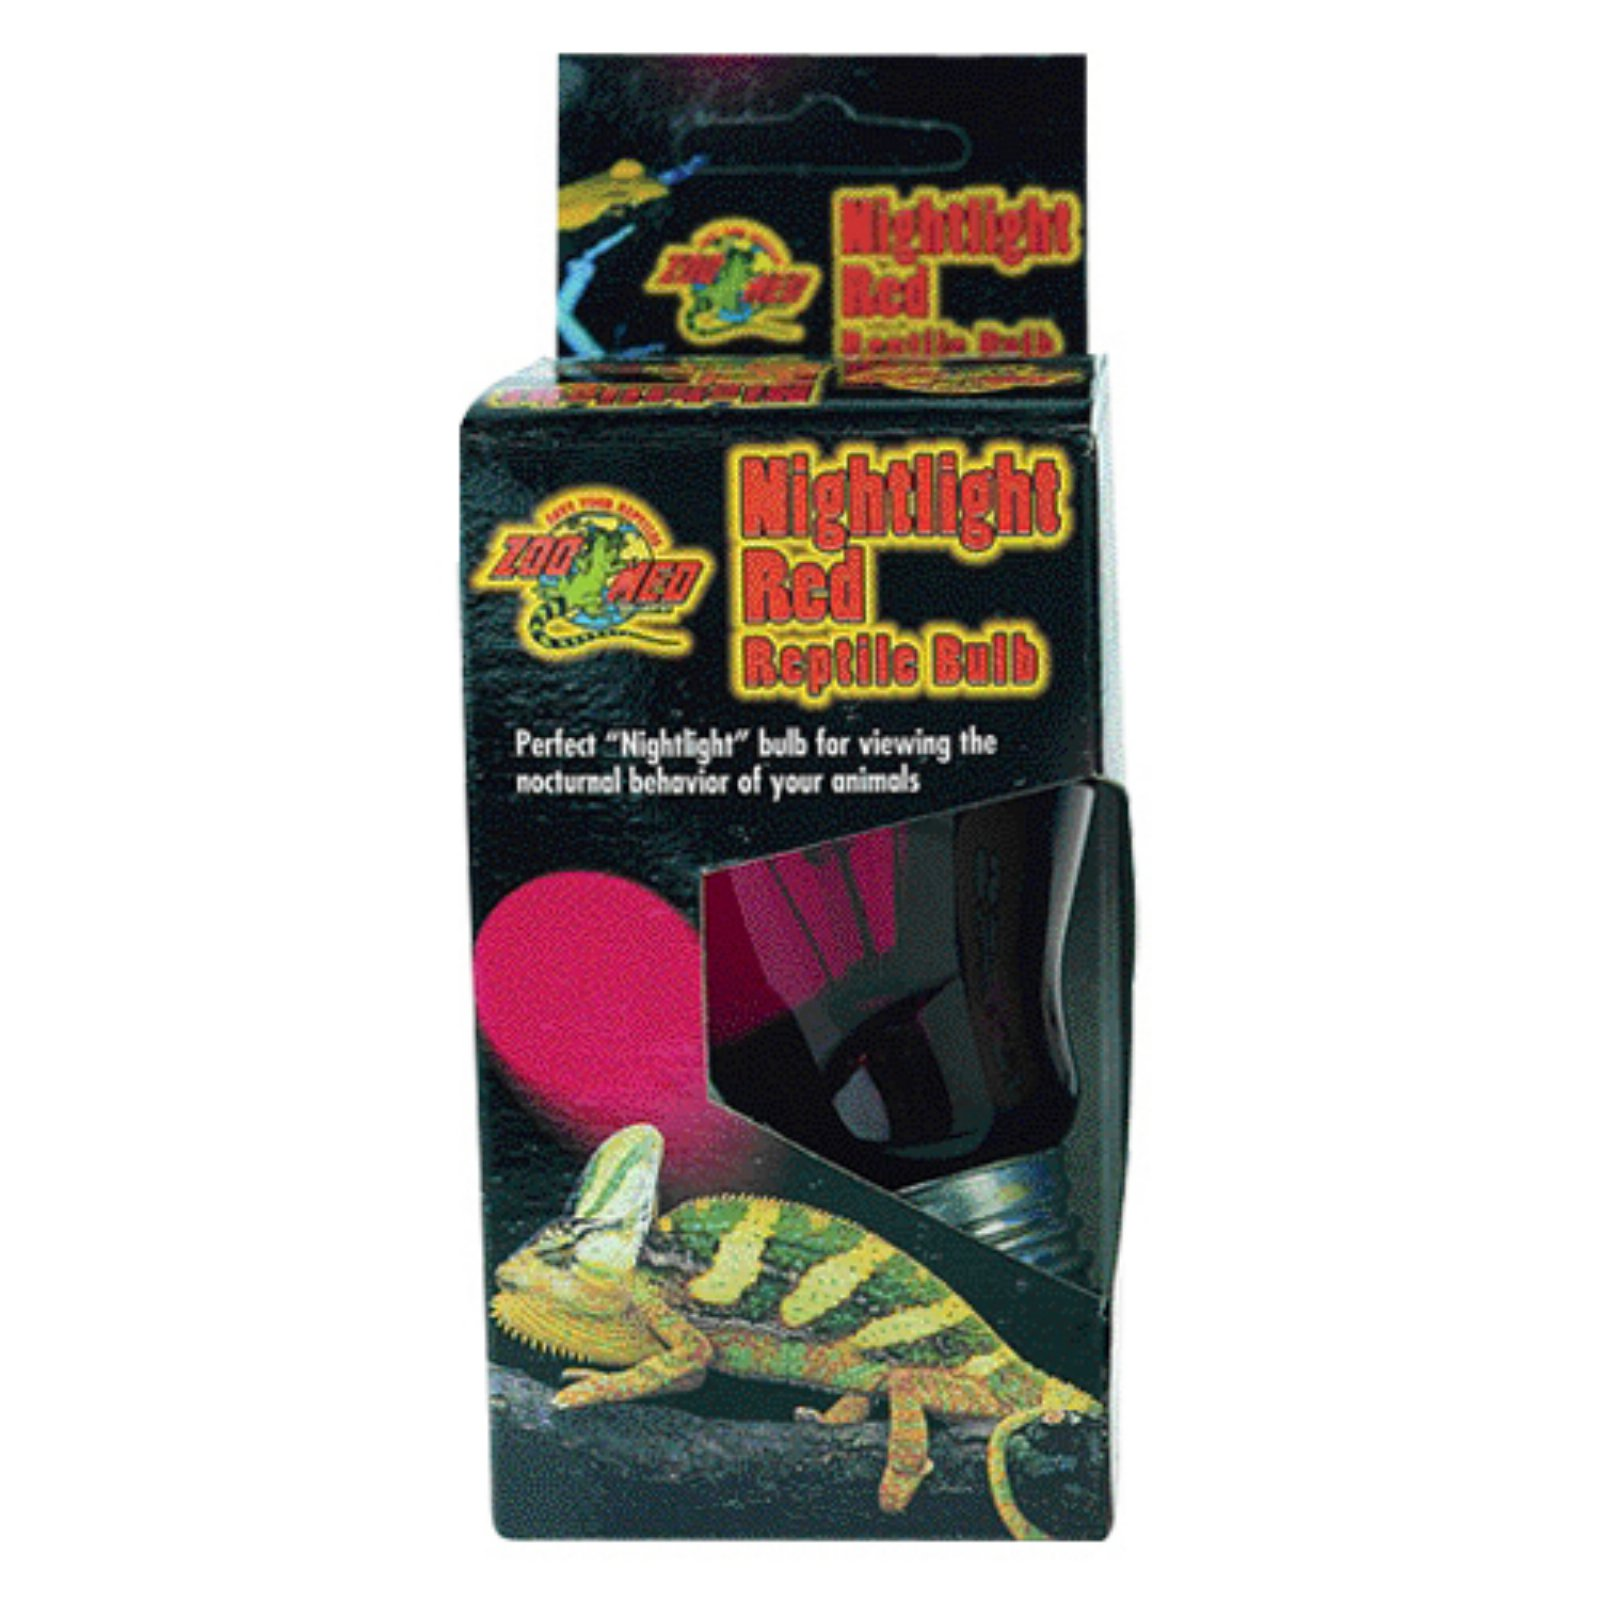 Zoo Med Reptile Bulb by ZOO MED LABORATORIES INC